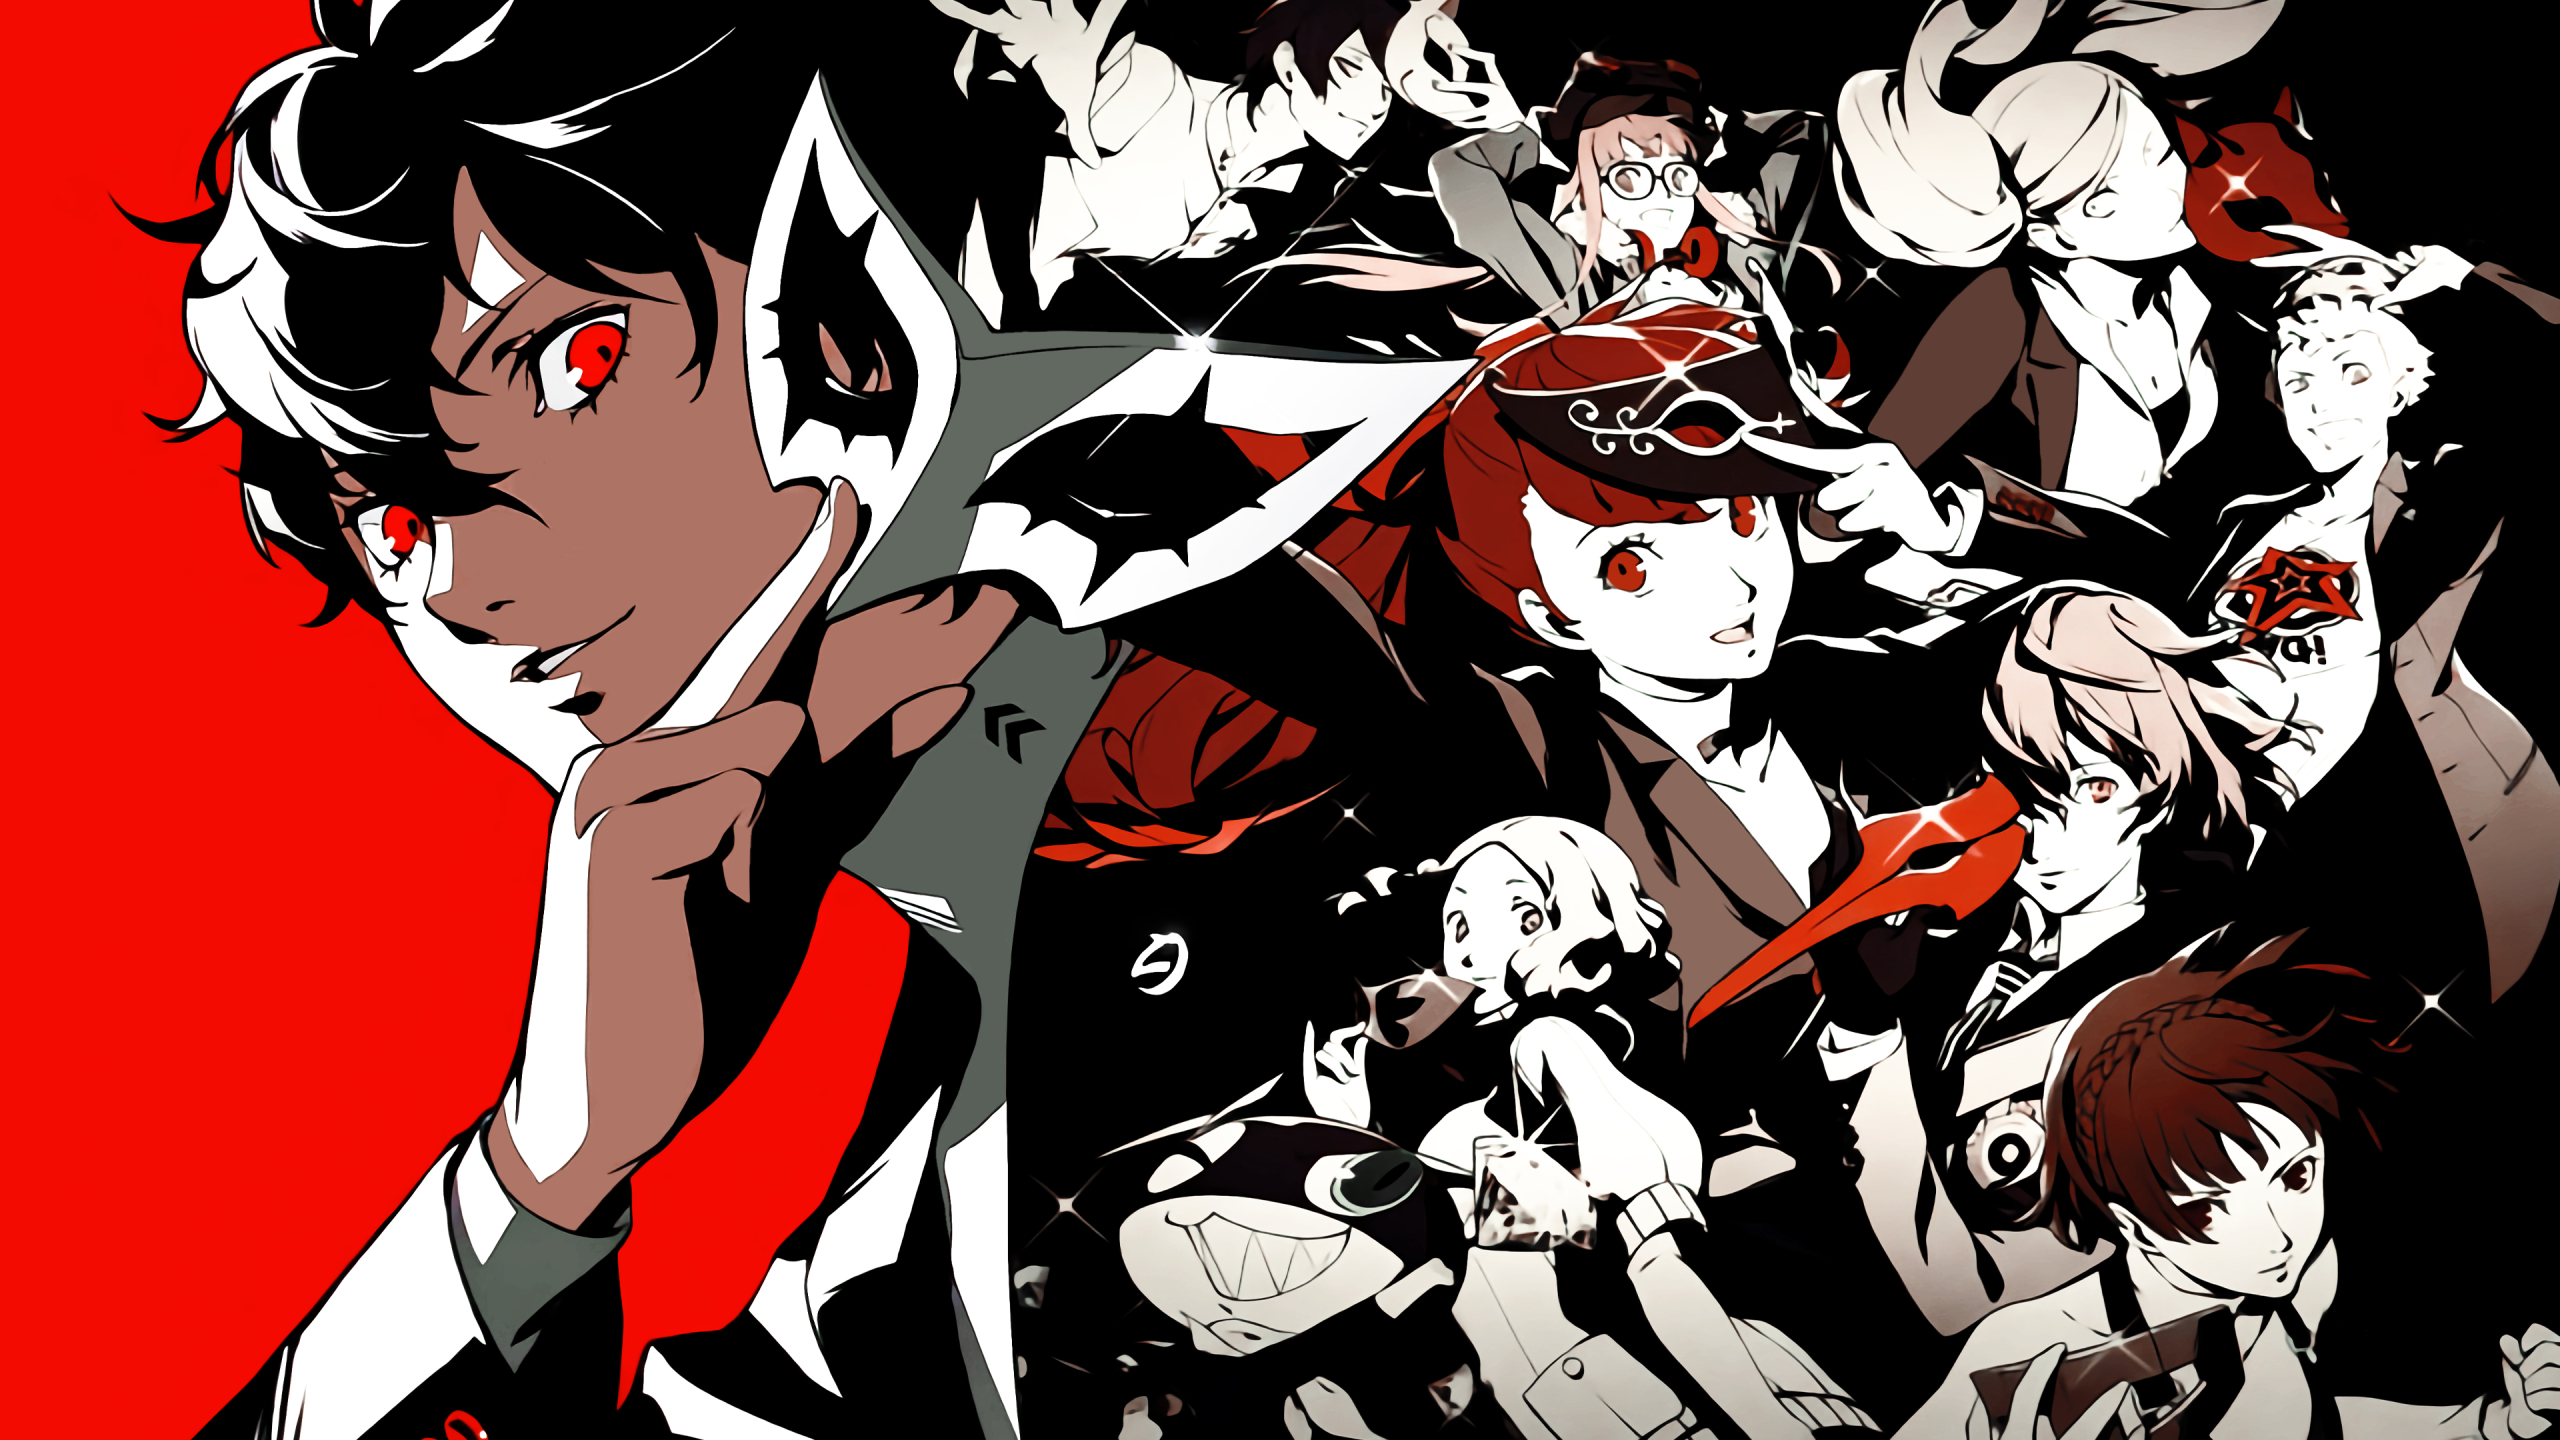 2560x1440 Persona Royal 2020 1440p Resolution Wallpaper Hd Games 4k Wallpapers Images Photos And Background